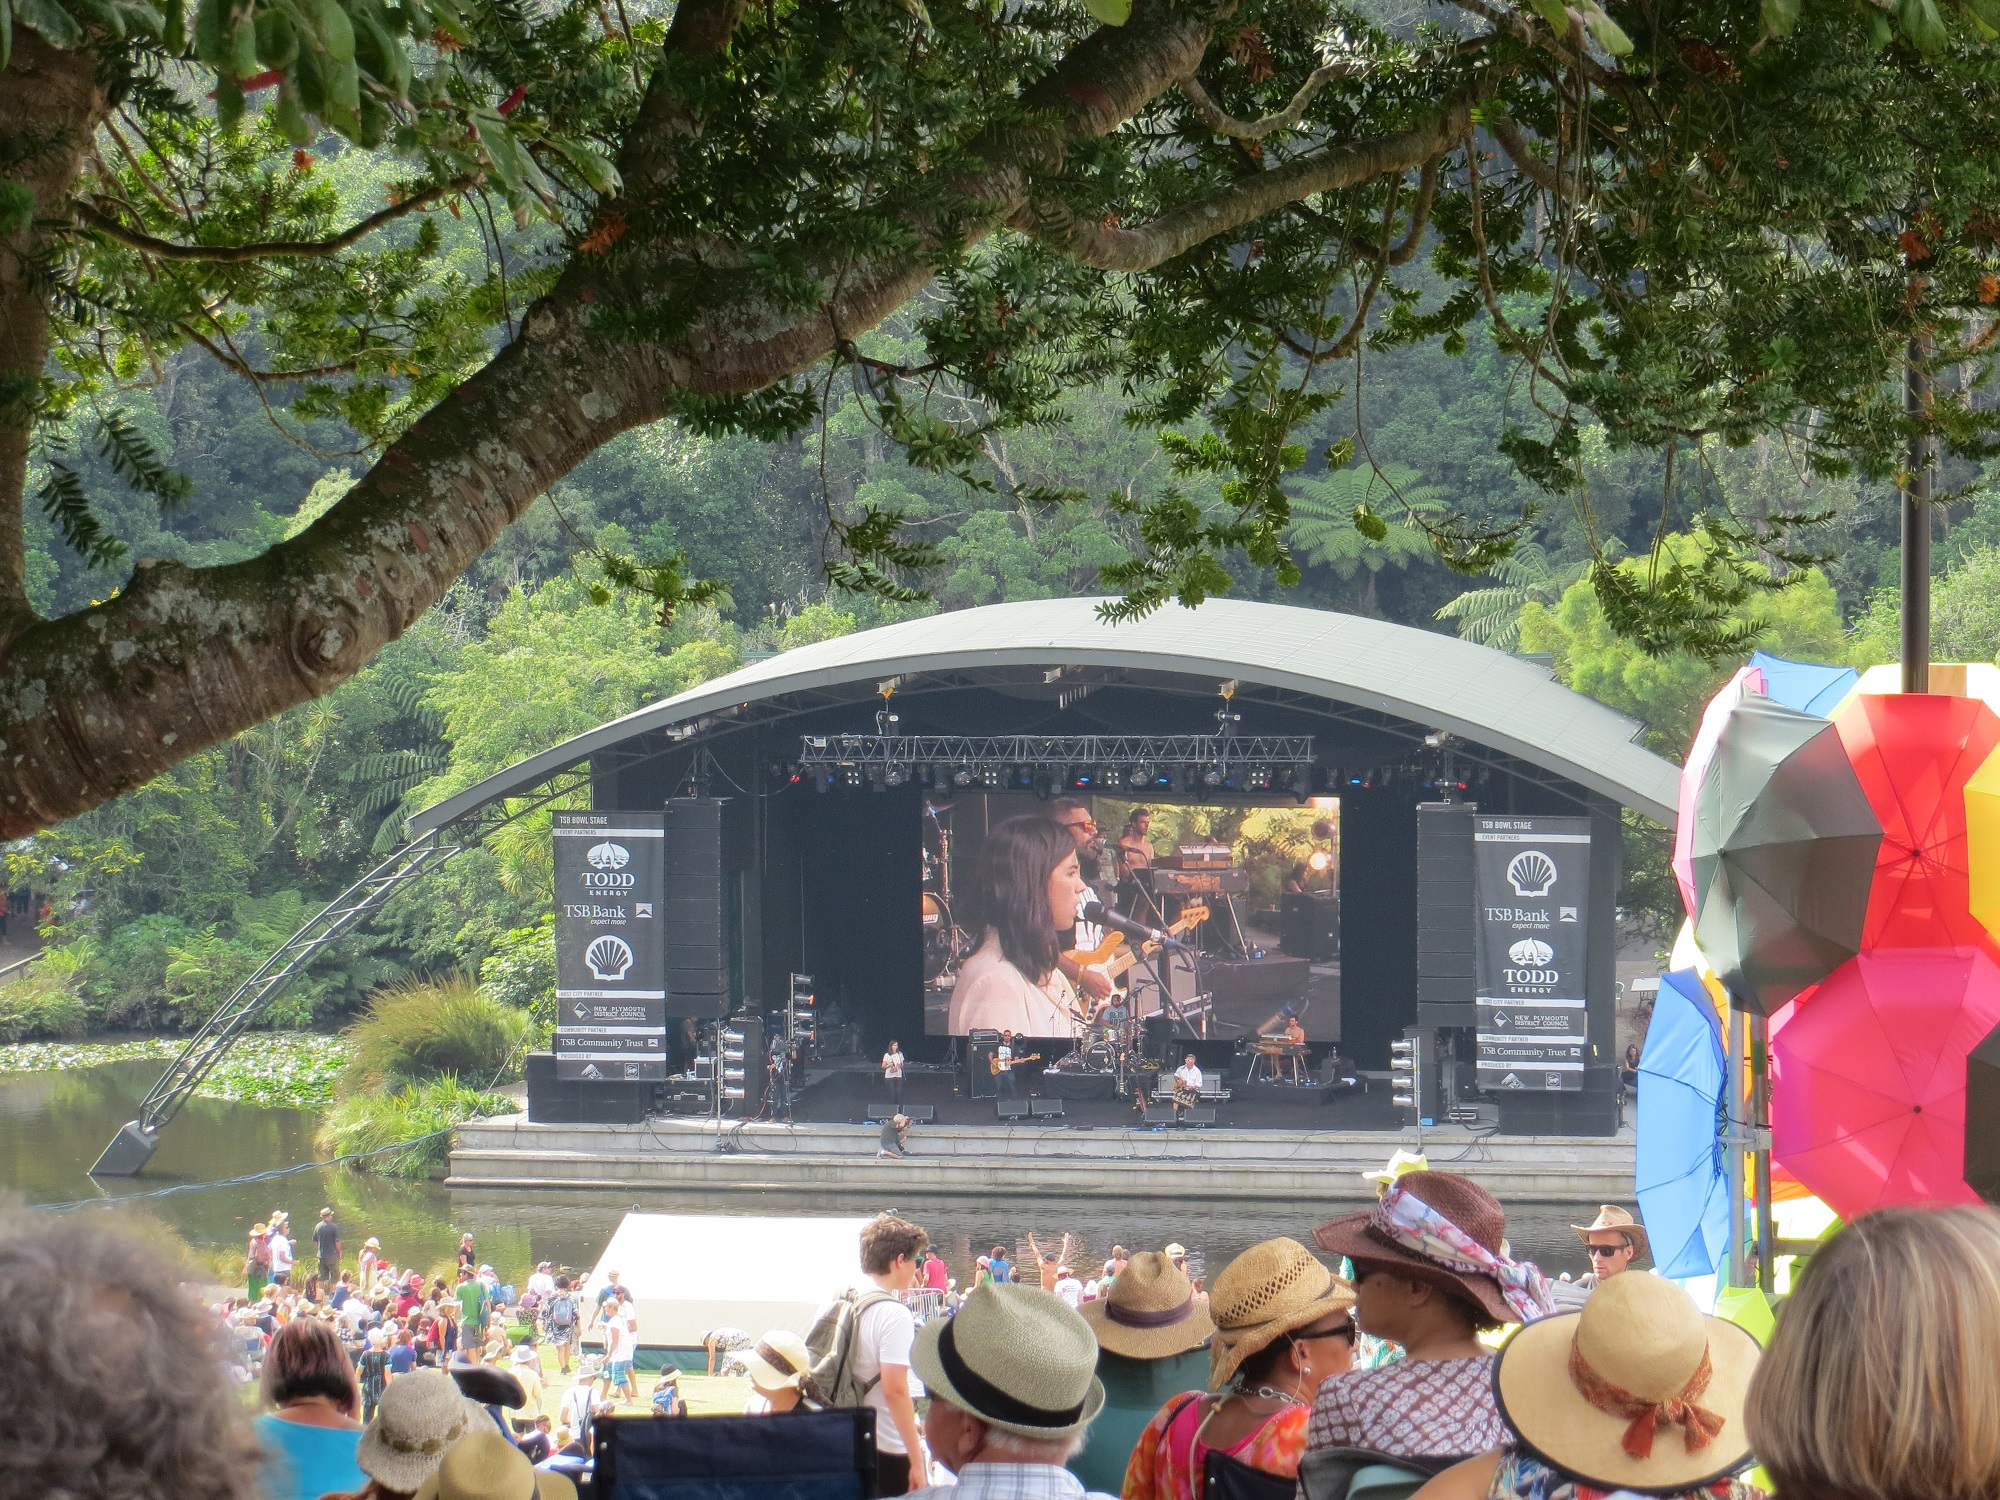 A view of the Bowl of Brooklands stage